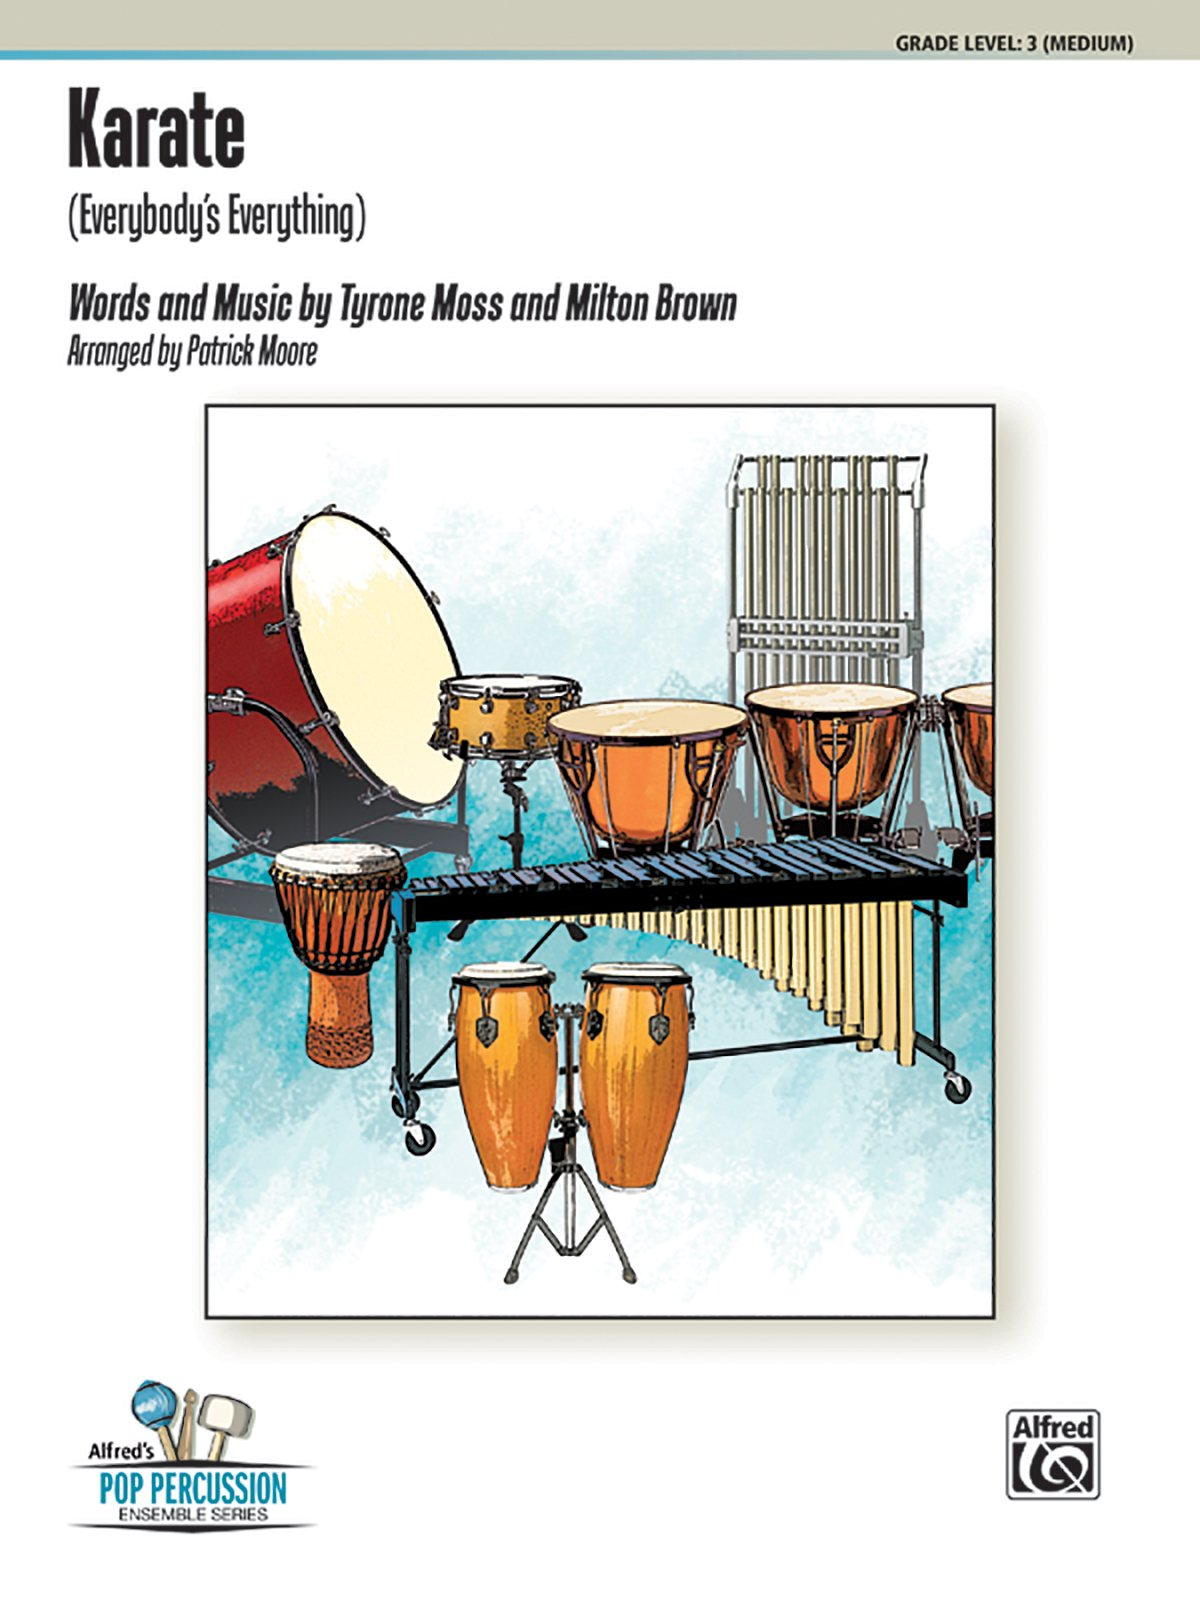 Download Karate (Everybody's Everything): For 11 Players, Conductor Score & Parts (Alfred's Pop Percussion Ensemble Series) pdf epub